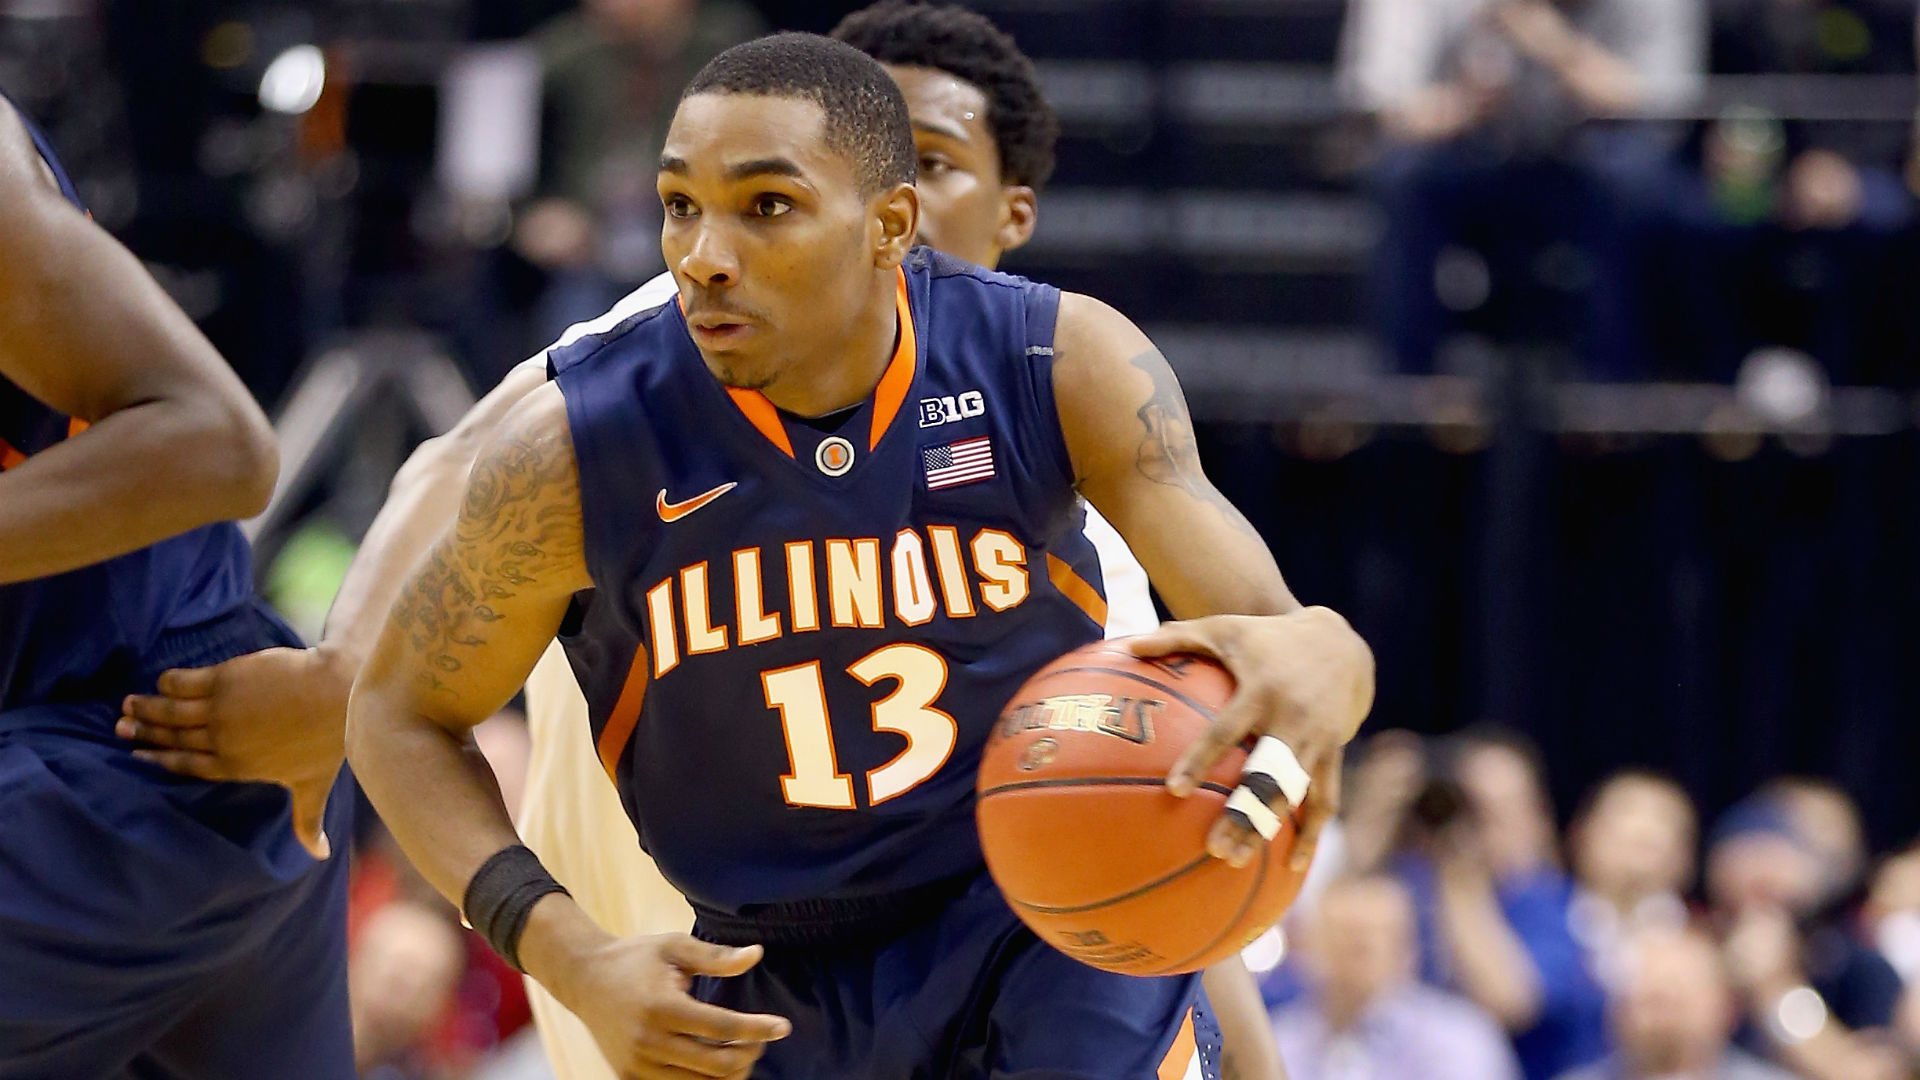 Illinois devastated by second season-ending injury for point guard Tracy Abrams